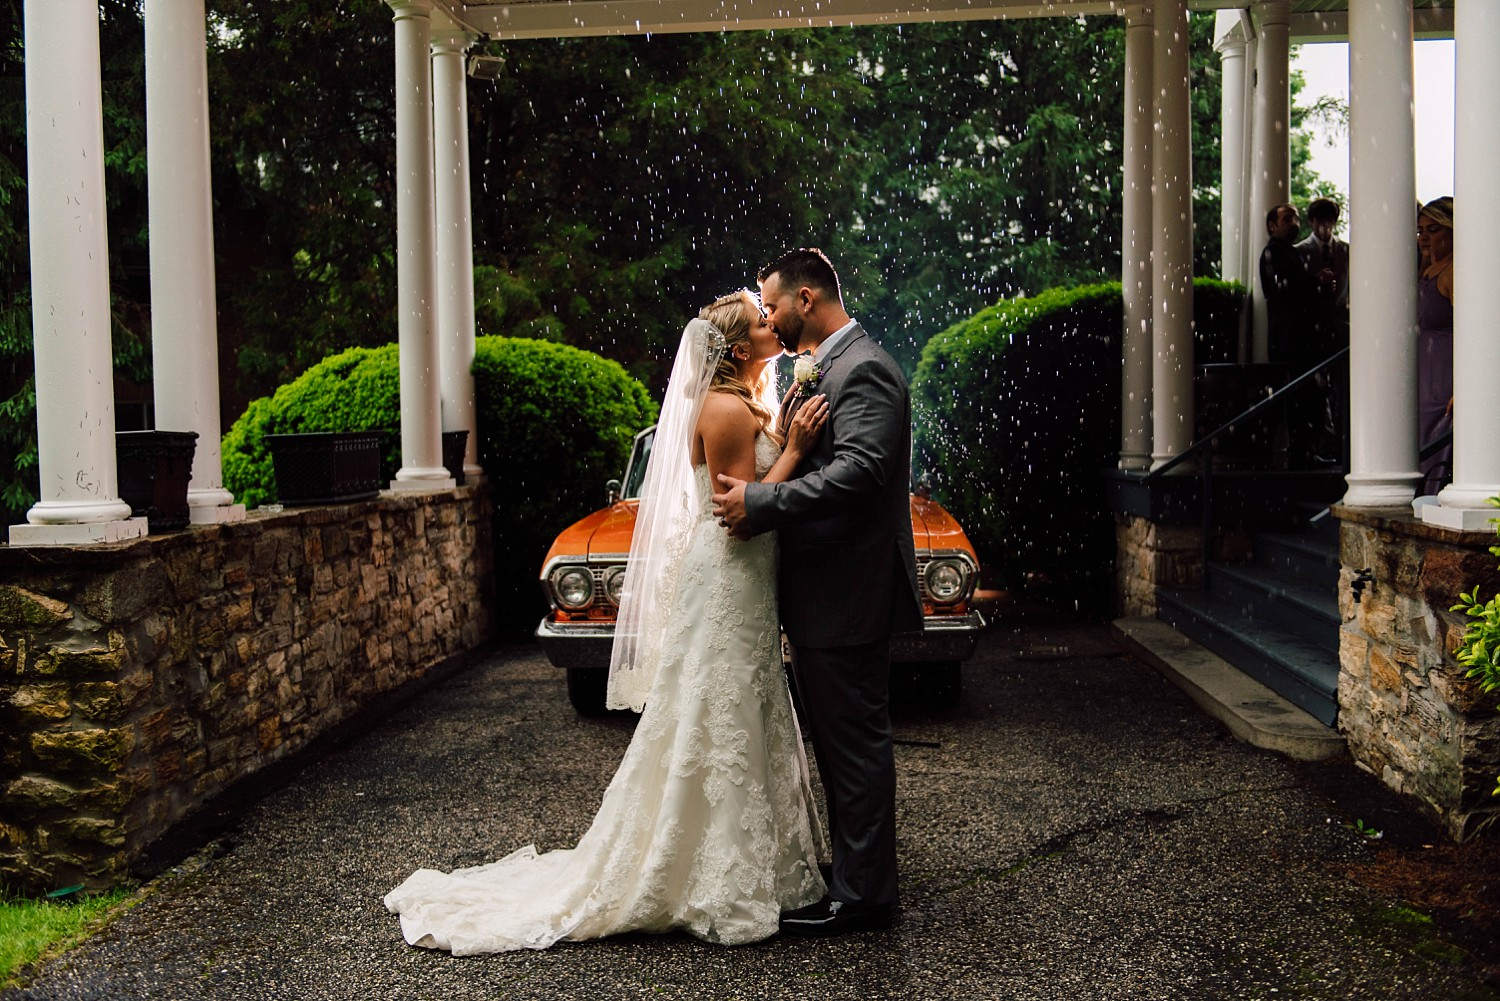 Was able to get this portraits of Travis and Amanda right before the reception. I know how special this car means to Travis and so we had to get a portrait in front of it. With it raining on their wedding day we were able to take advantage of it! creating something beautiful and artistic that would not otherwise be available on a sunny wedding day. #MakingLemonade